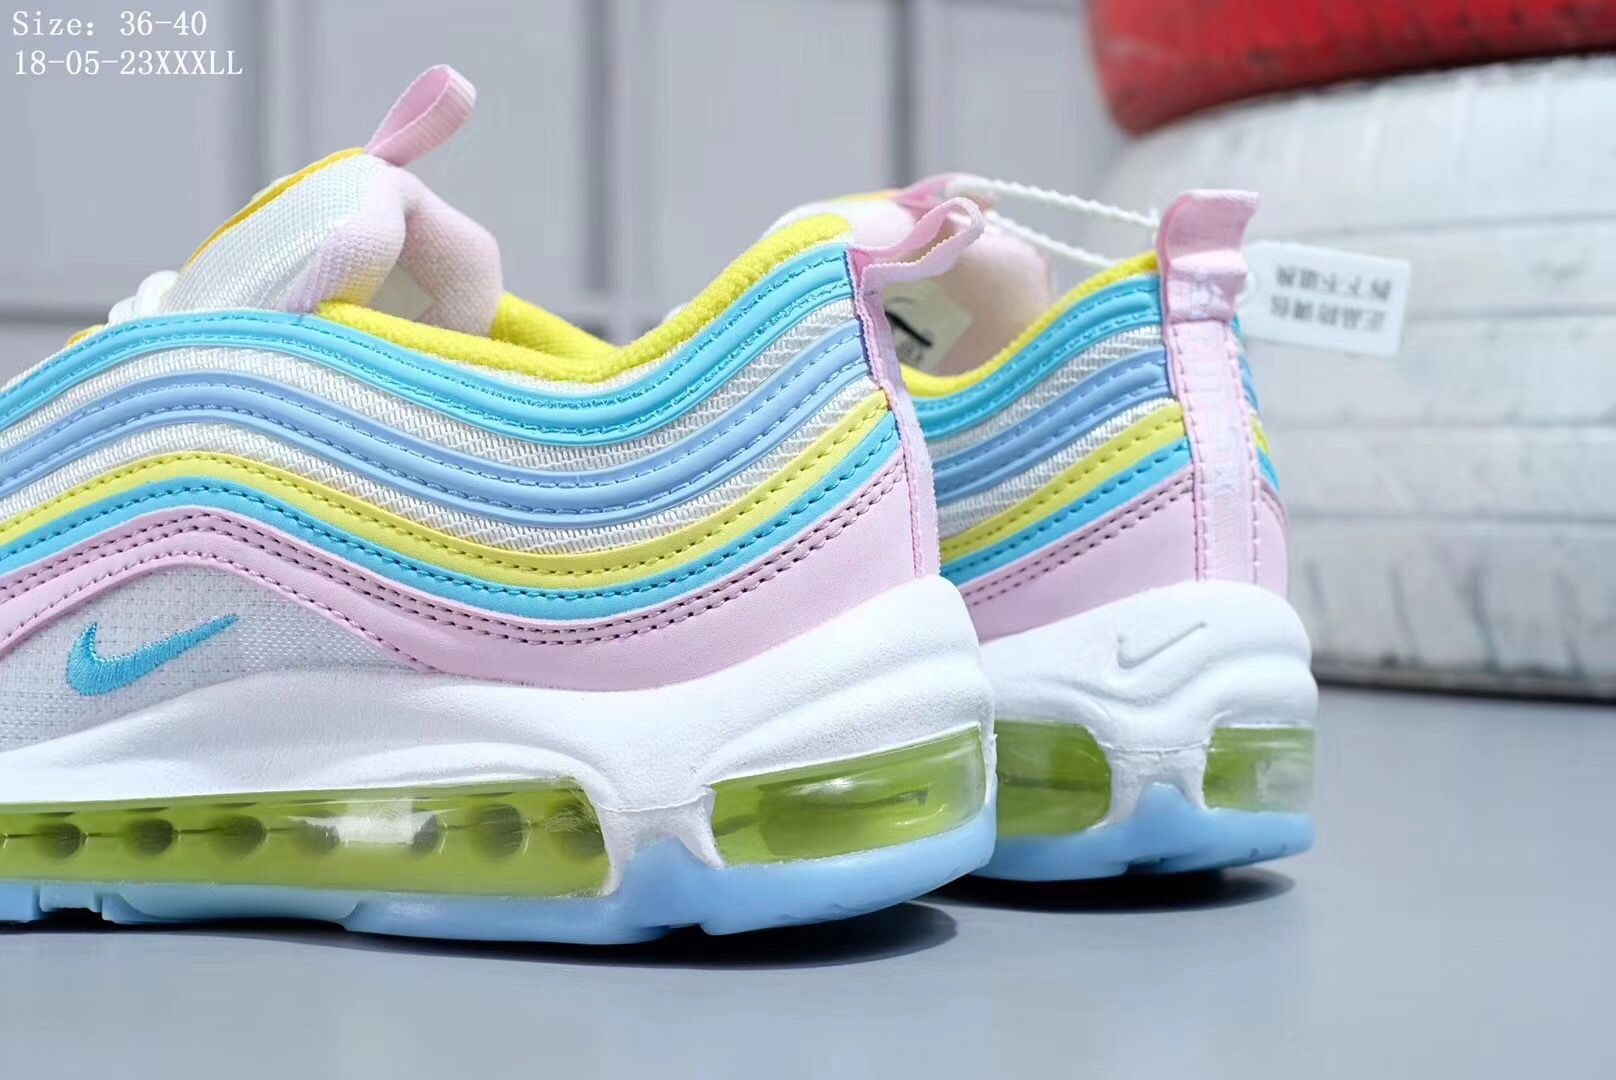 Nike Air Max 97 Pink White Yellow Green Candy Colorful Rainbow Shoes 921826 016